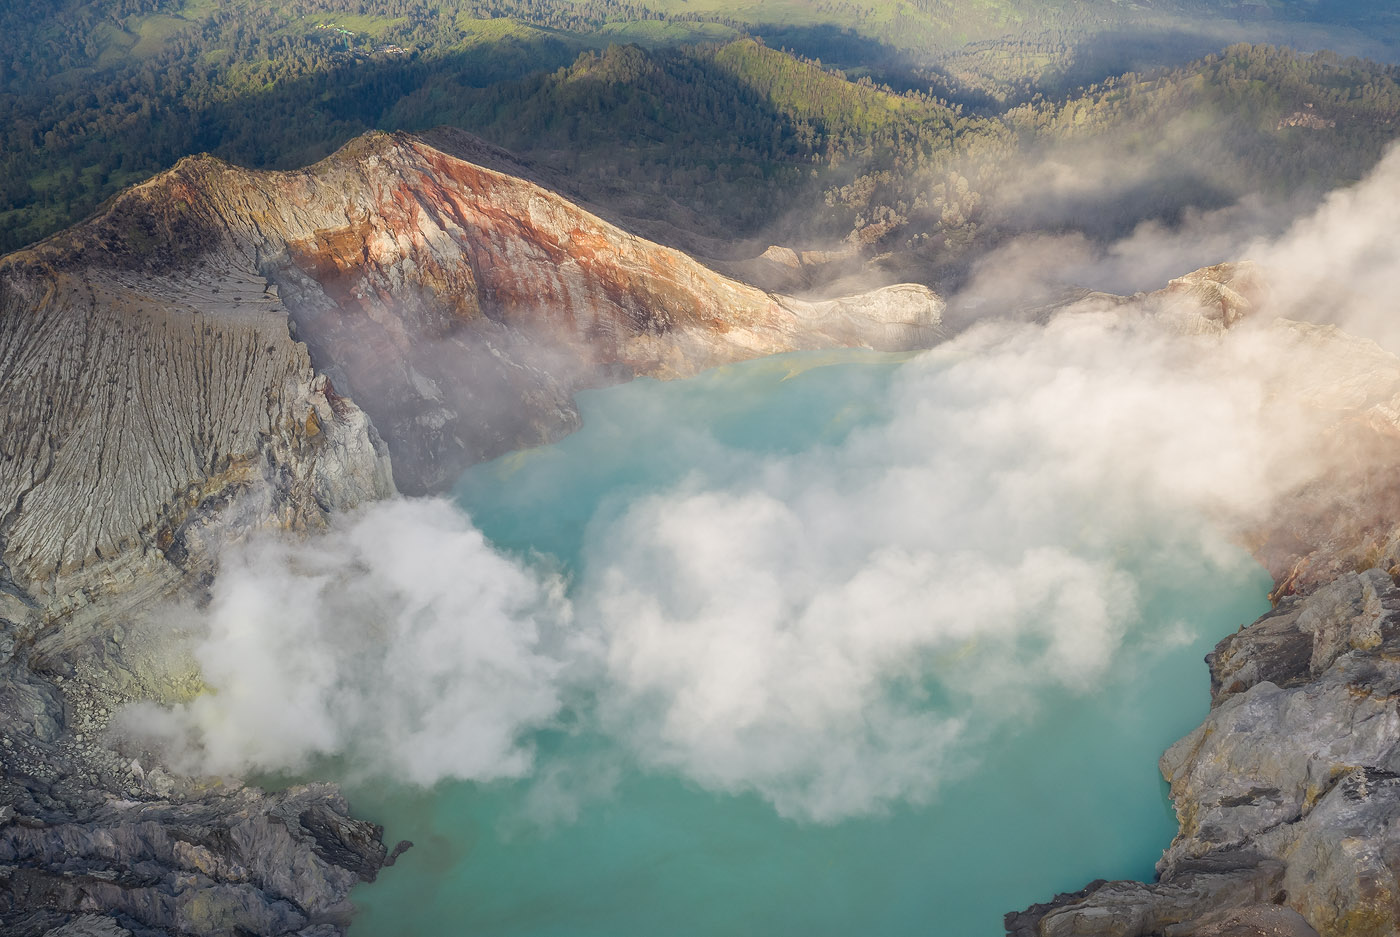 In this aerial I used layering as a compositional tool. Notice how the layers of smoke/lake/bare mountain/ lush forest, together with light and shadow, create both depth and continuity, and tell a story of natural contrasts.